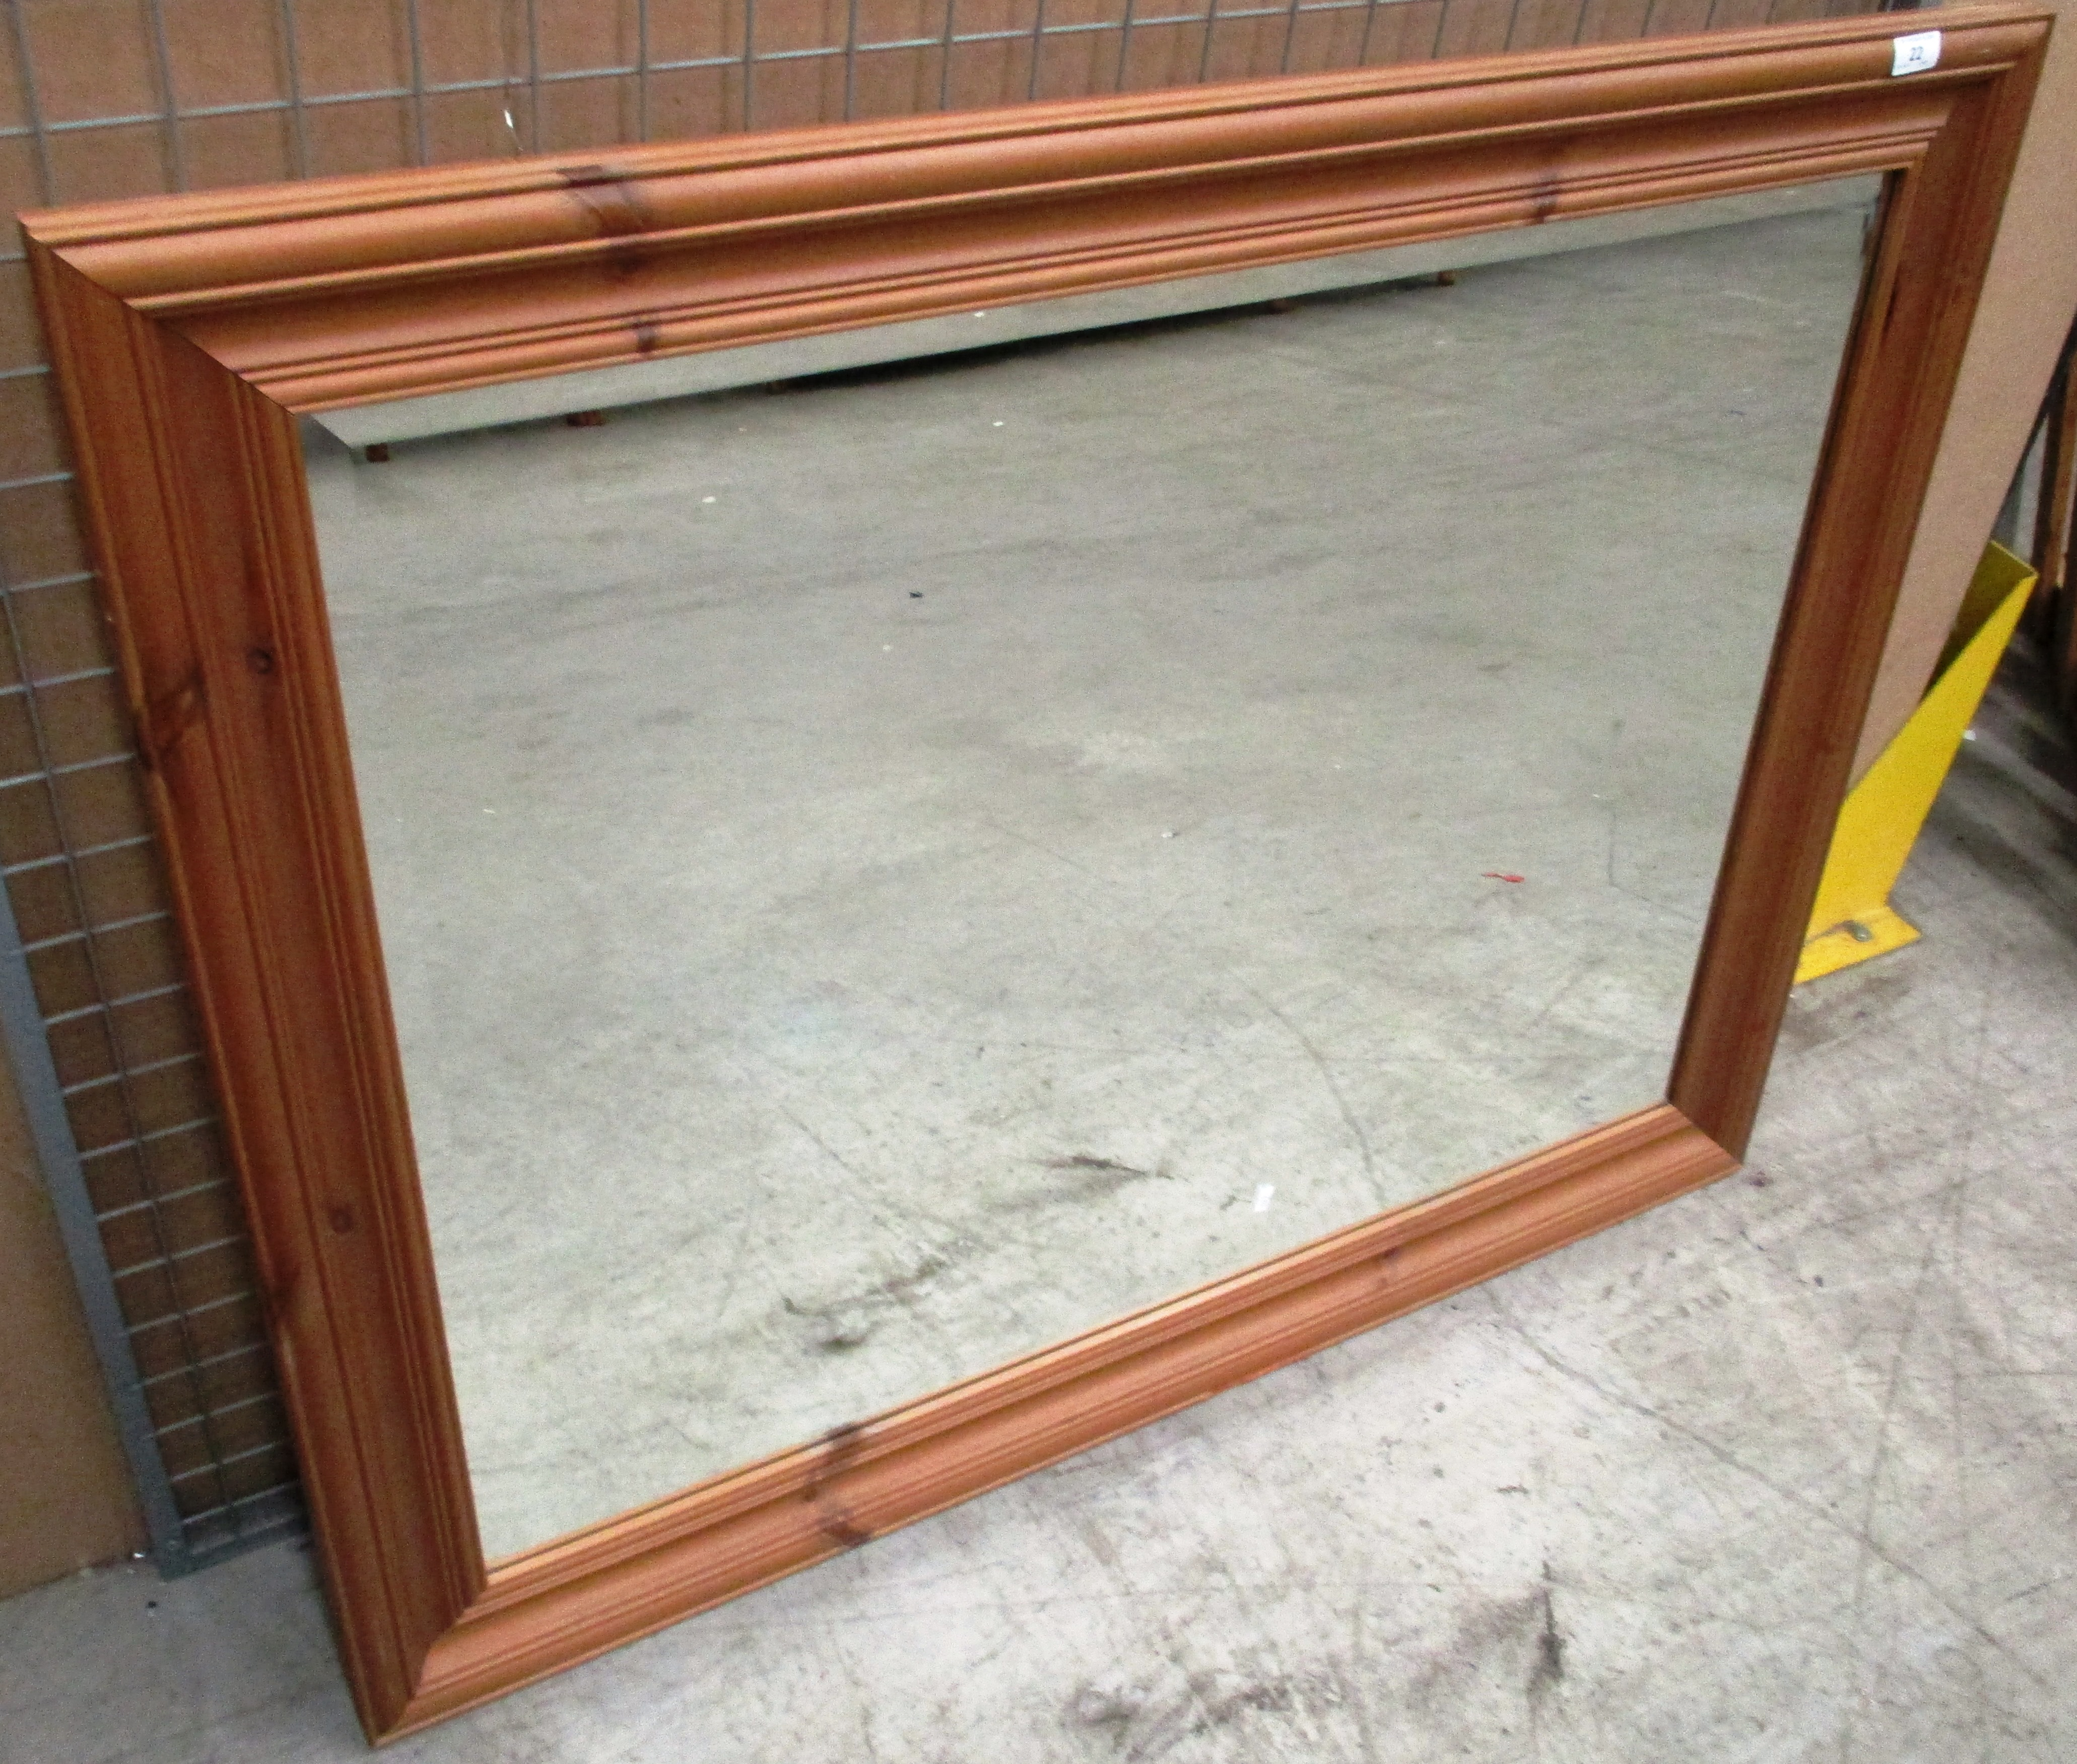 Lot 22 - A Gallery Chester pine framed wall mirror 93 x 119cm